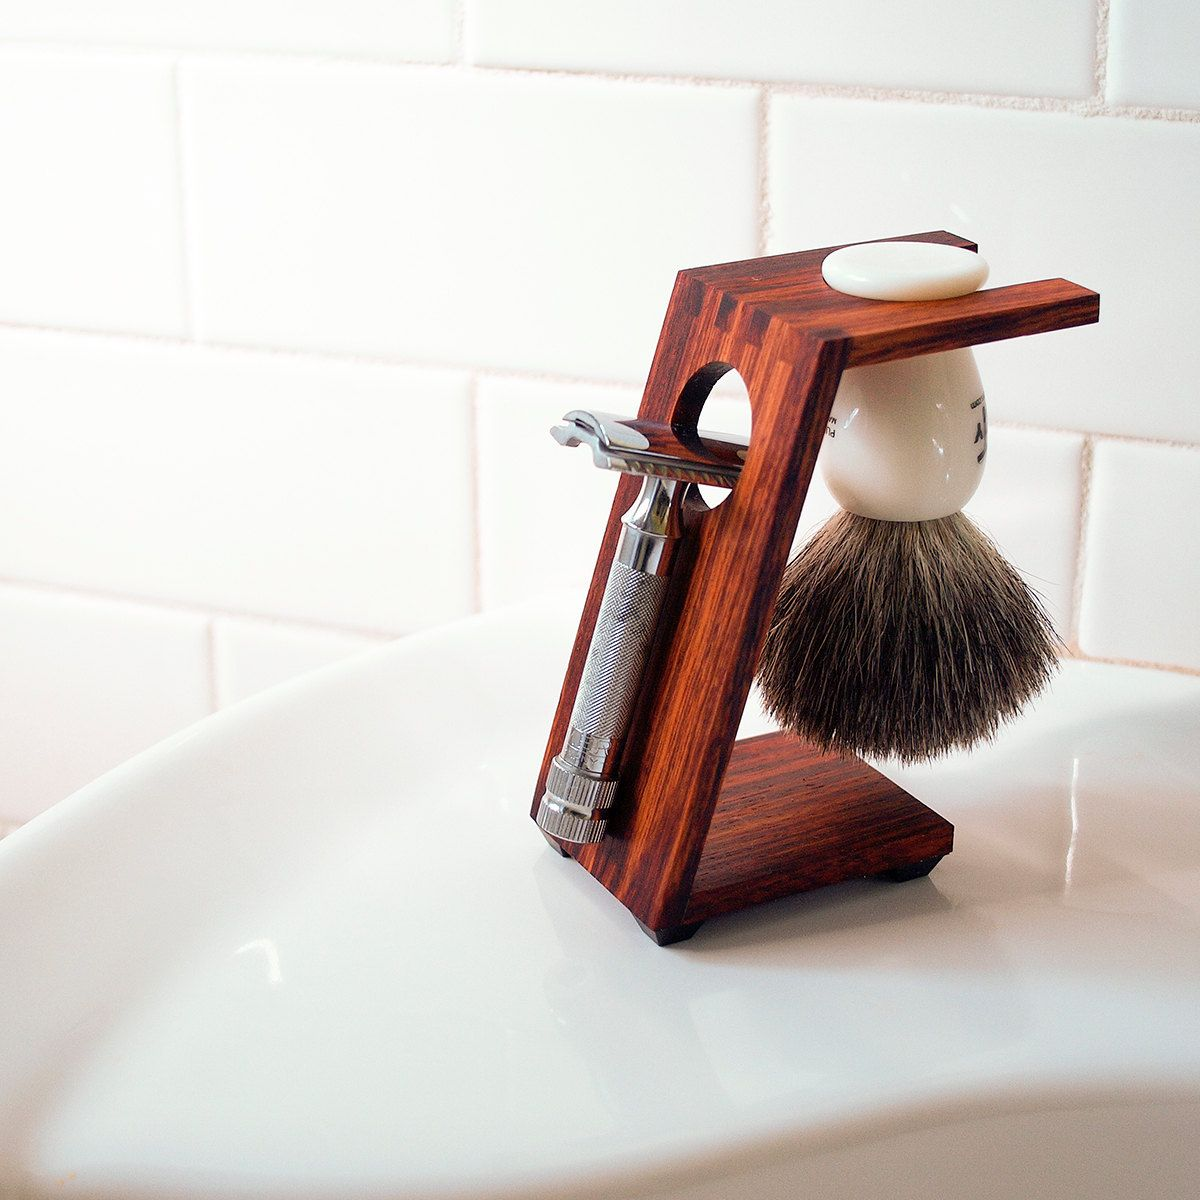 Wood Shaving Stand for Safety Razors Burmese Rosewood